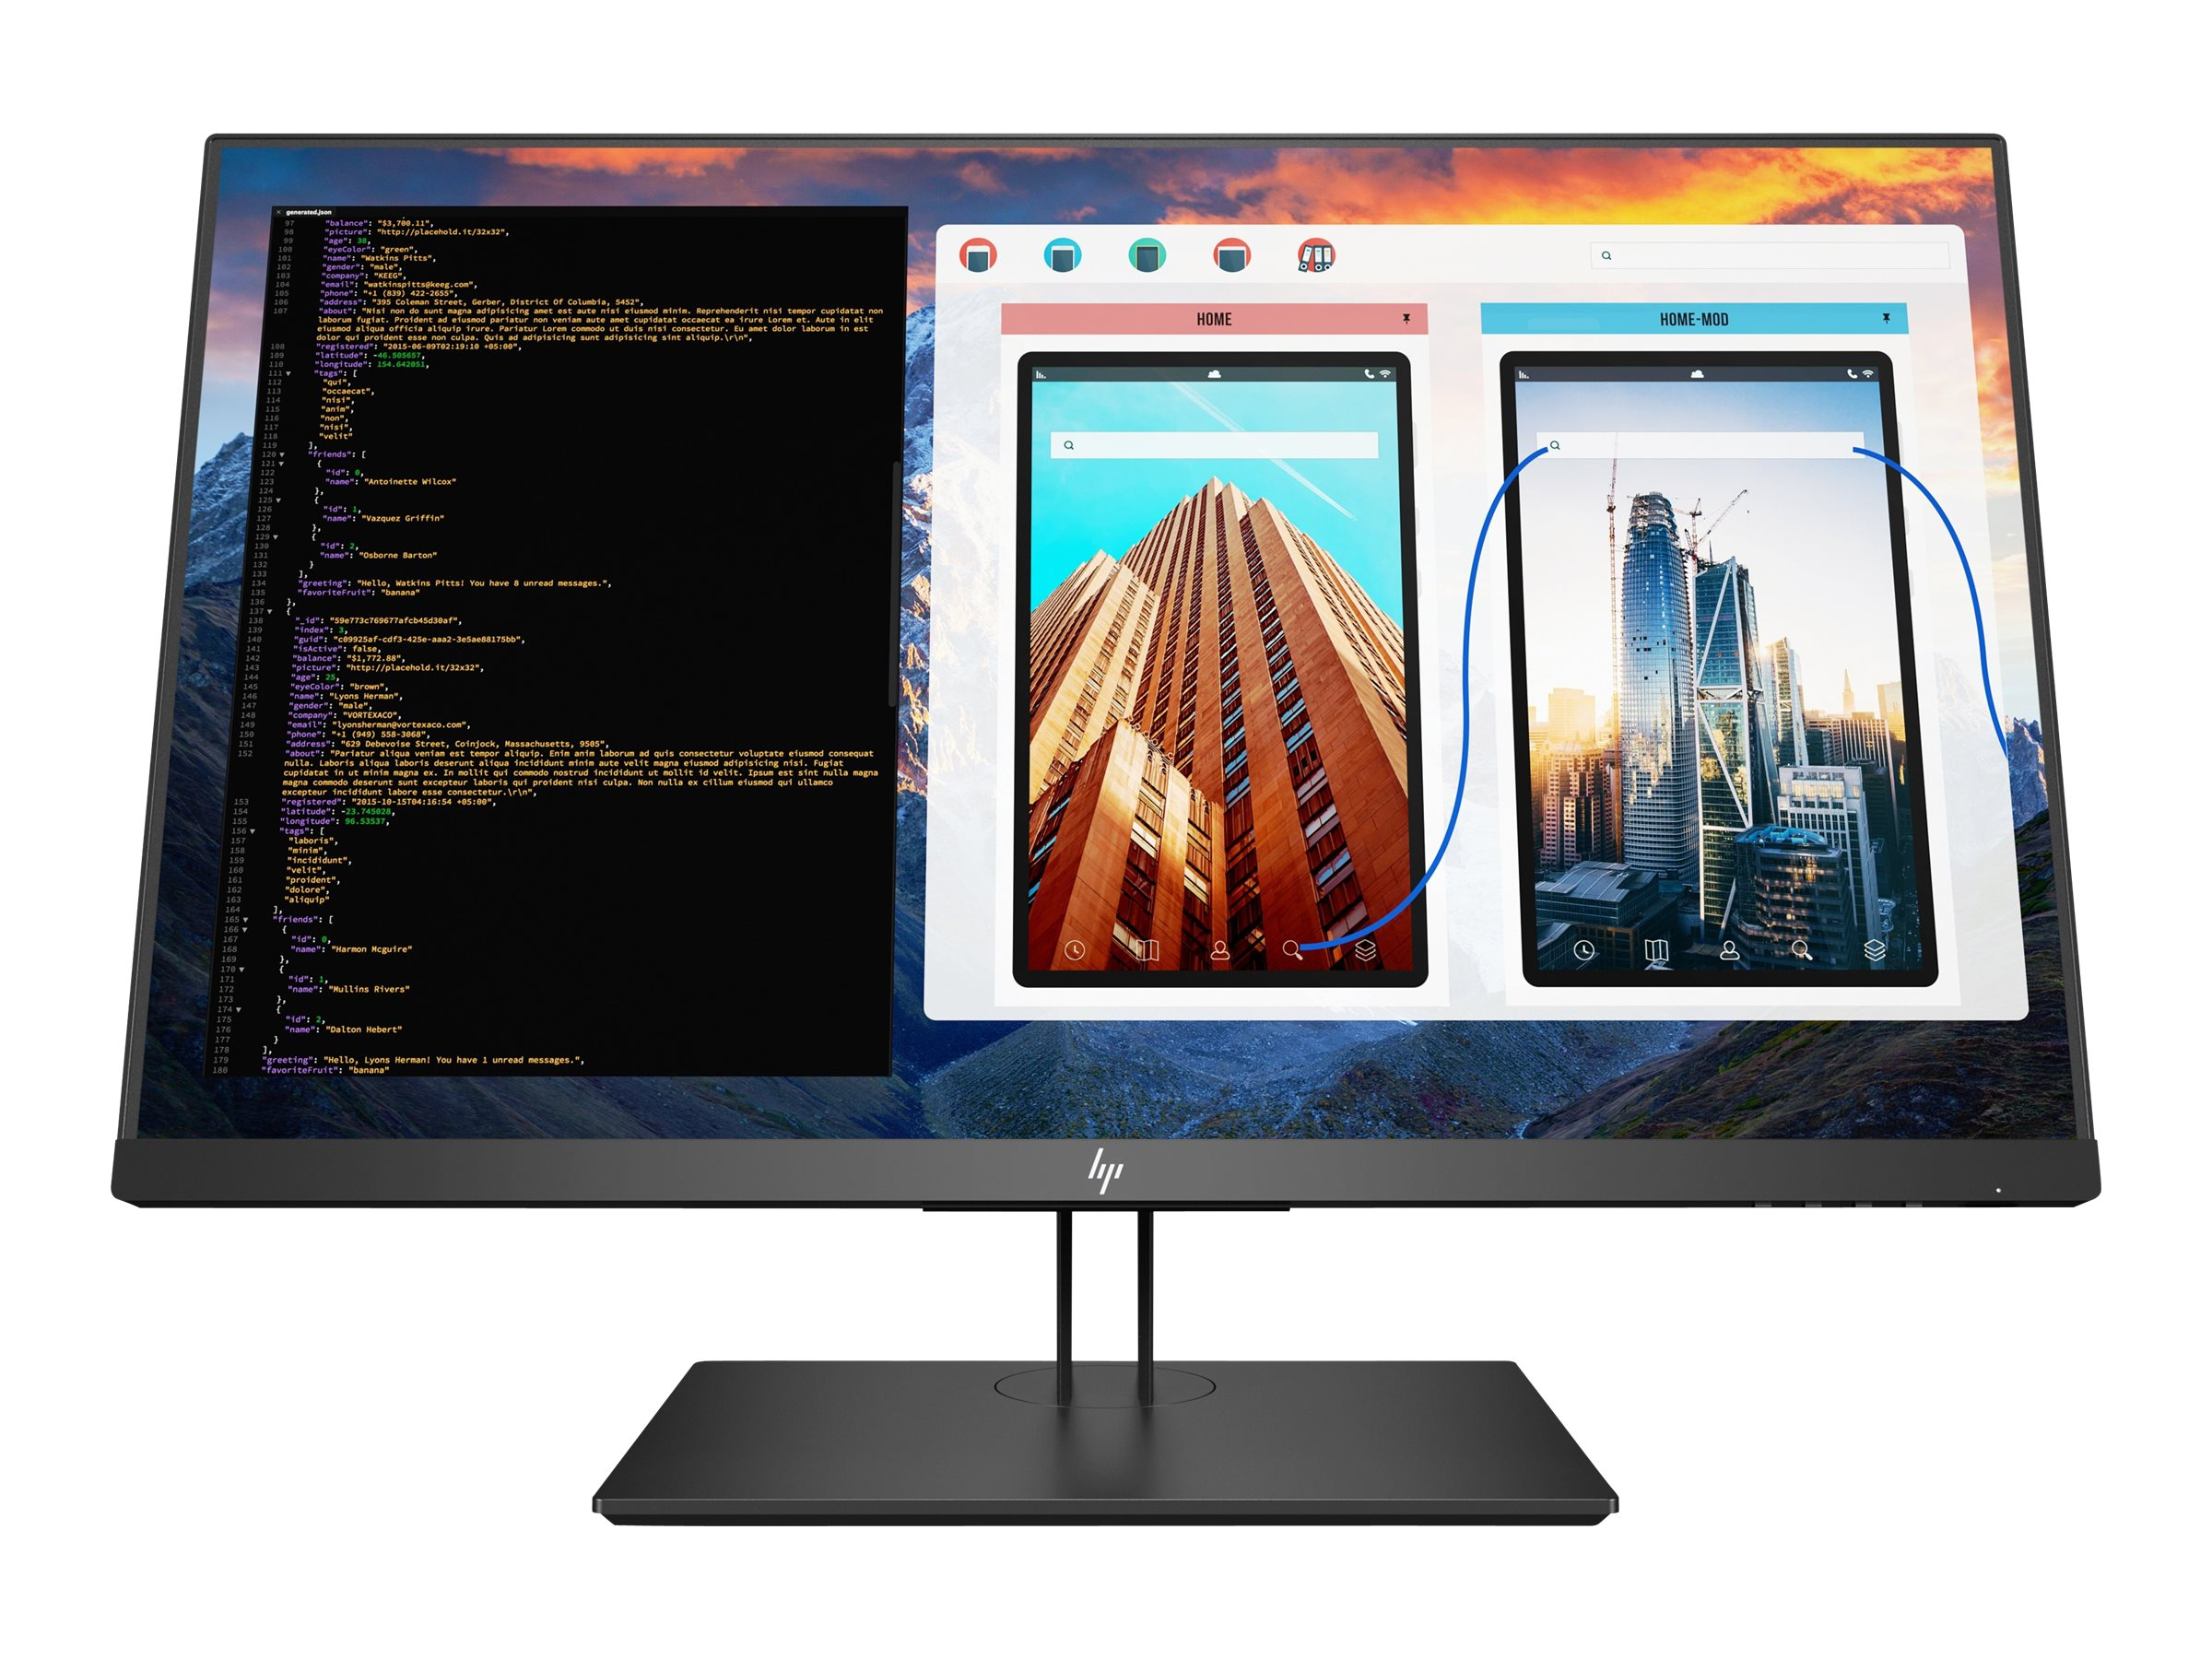 "HP Z27 - LED monitor - 27"" - Smart Buy"